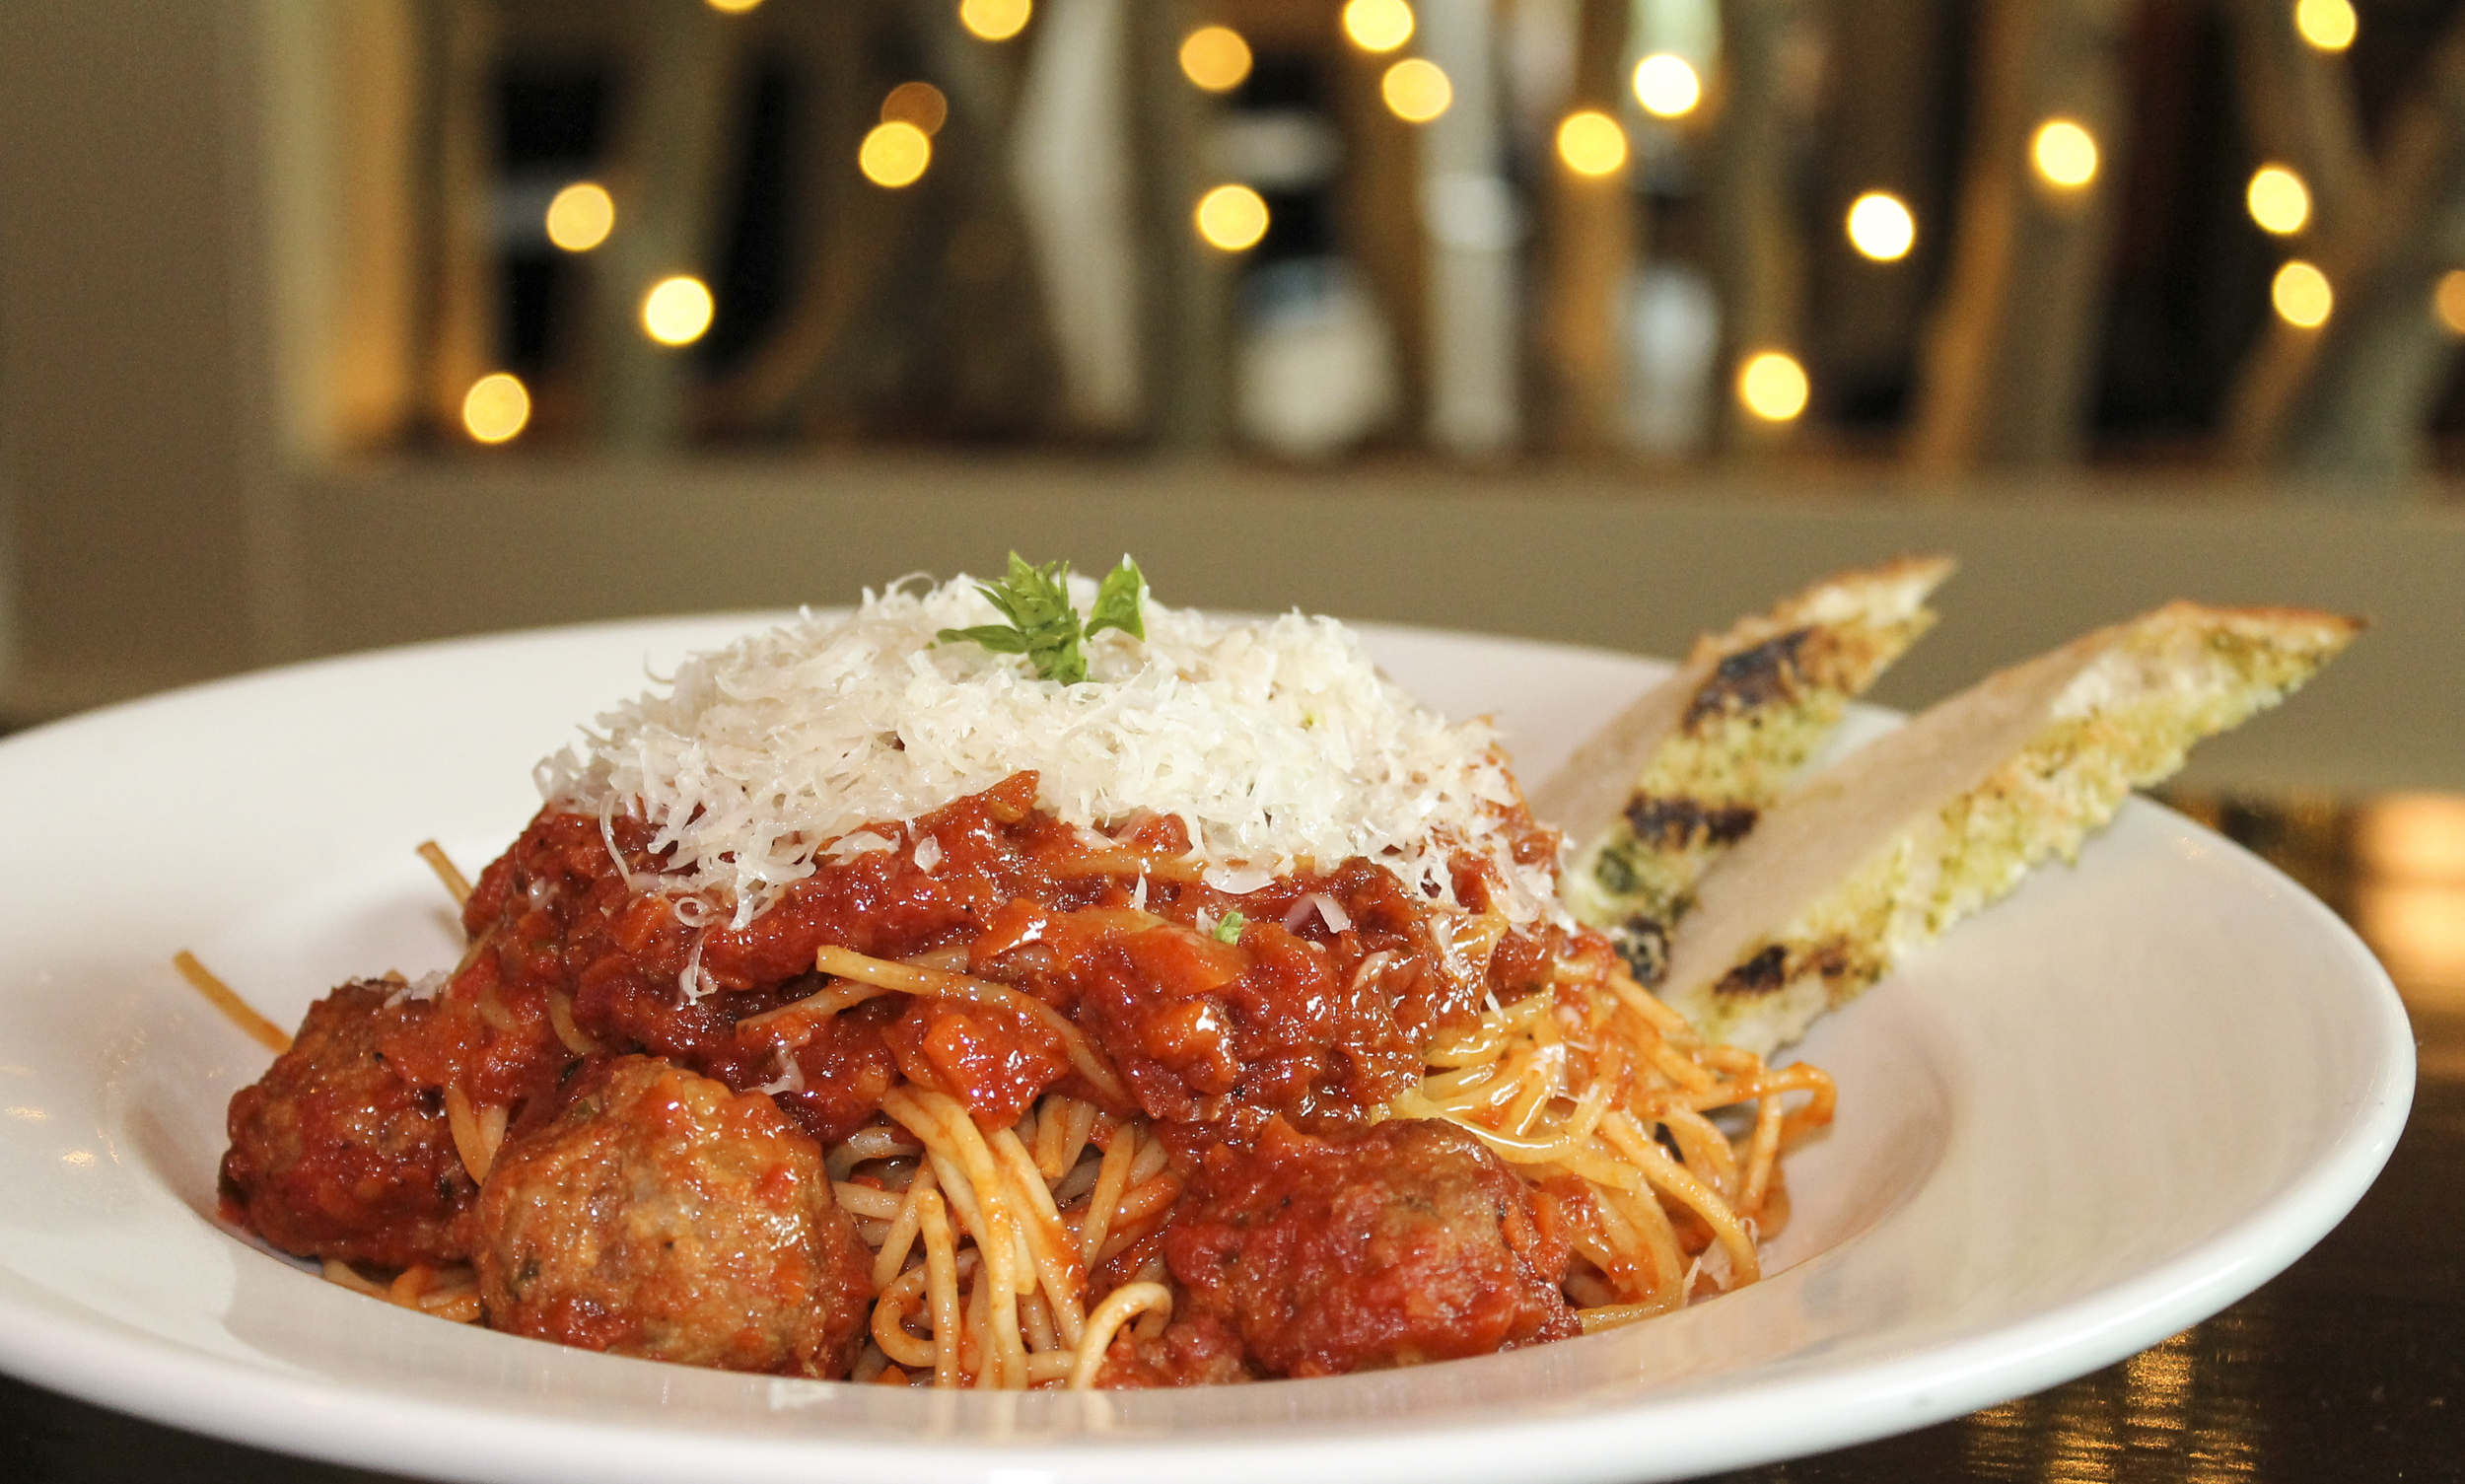 Incredible dishes brought to you by Chef Chad Pritchard, experience a new twist on New York Italian cuisine.